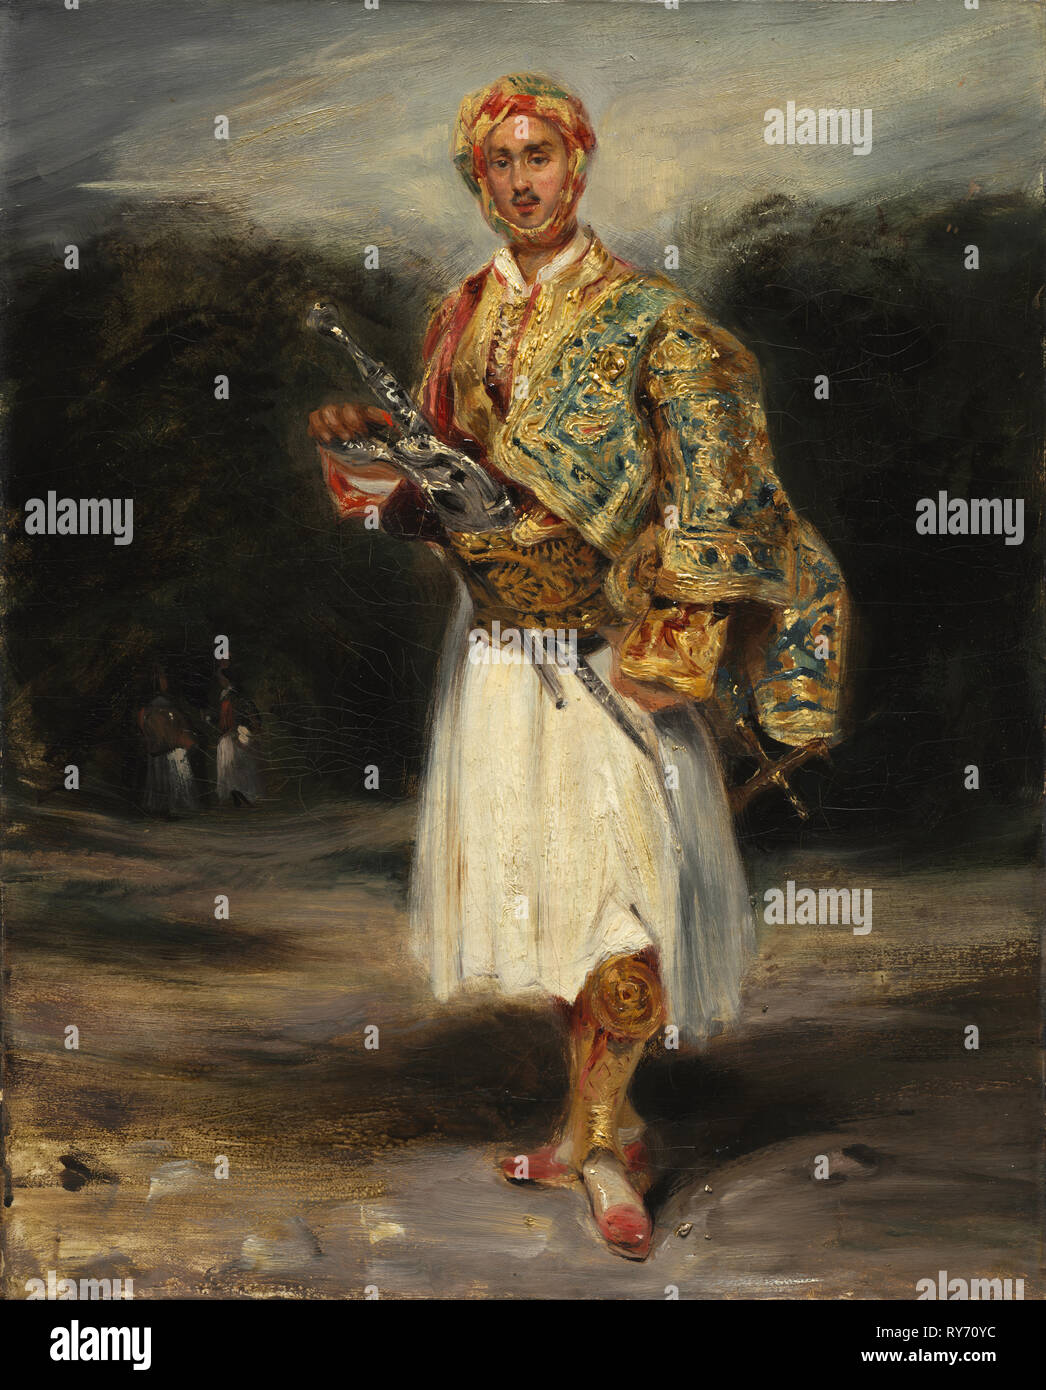 Count Demetrius de Palatiano in Suliot Costume, not dated. Imitator of Eugène Delacroix (French, 1798-1863). Oil on fabric; unframed: 40.7 x 33.2 cm (16 x 13 1/16 in Stock Photo